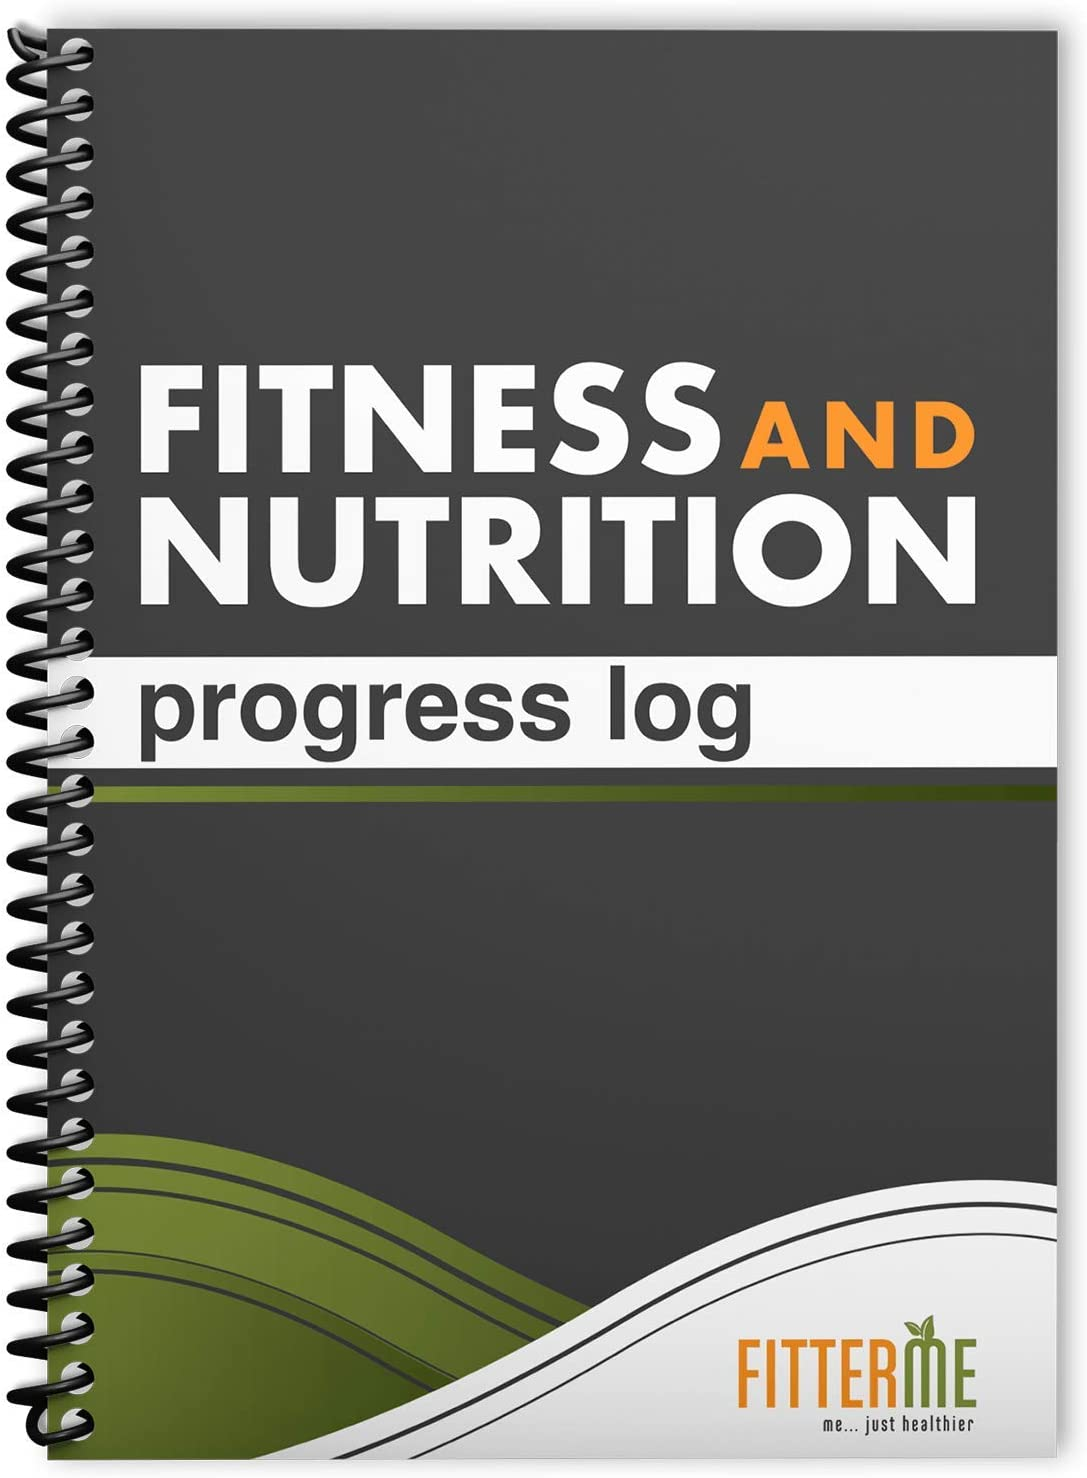 Food and Exercise Journal - Fitness and Nutrition Planner for Health and Weight Loss - Gym Workout Log Book and Diet Journal - Wellness Tracker with Daily Inspirational Quotes - Sturdy Binding